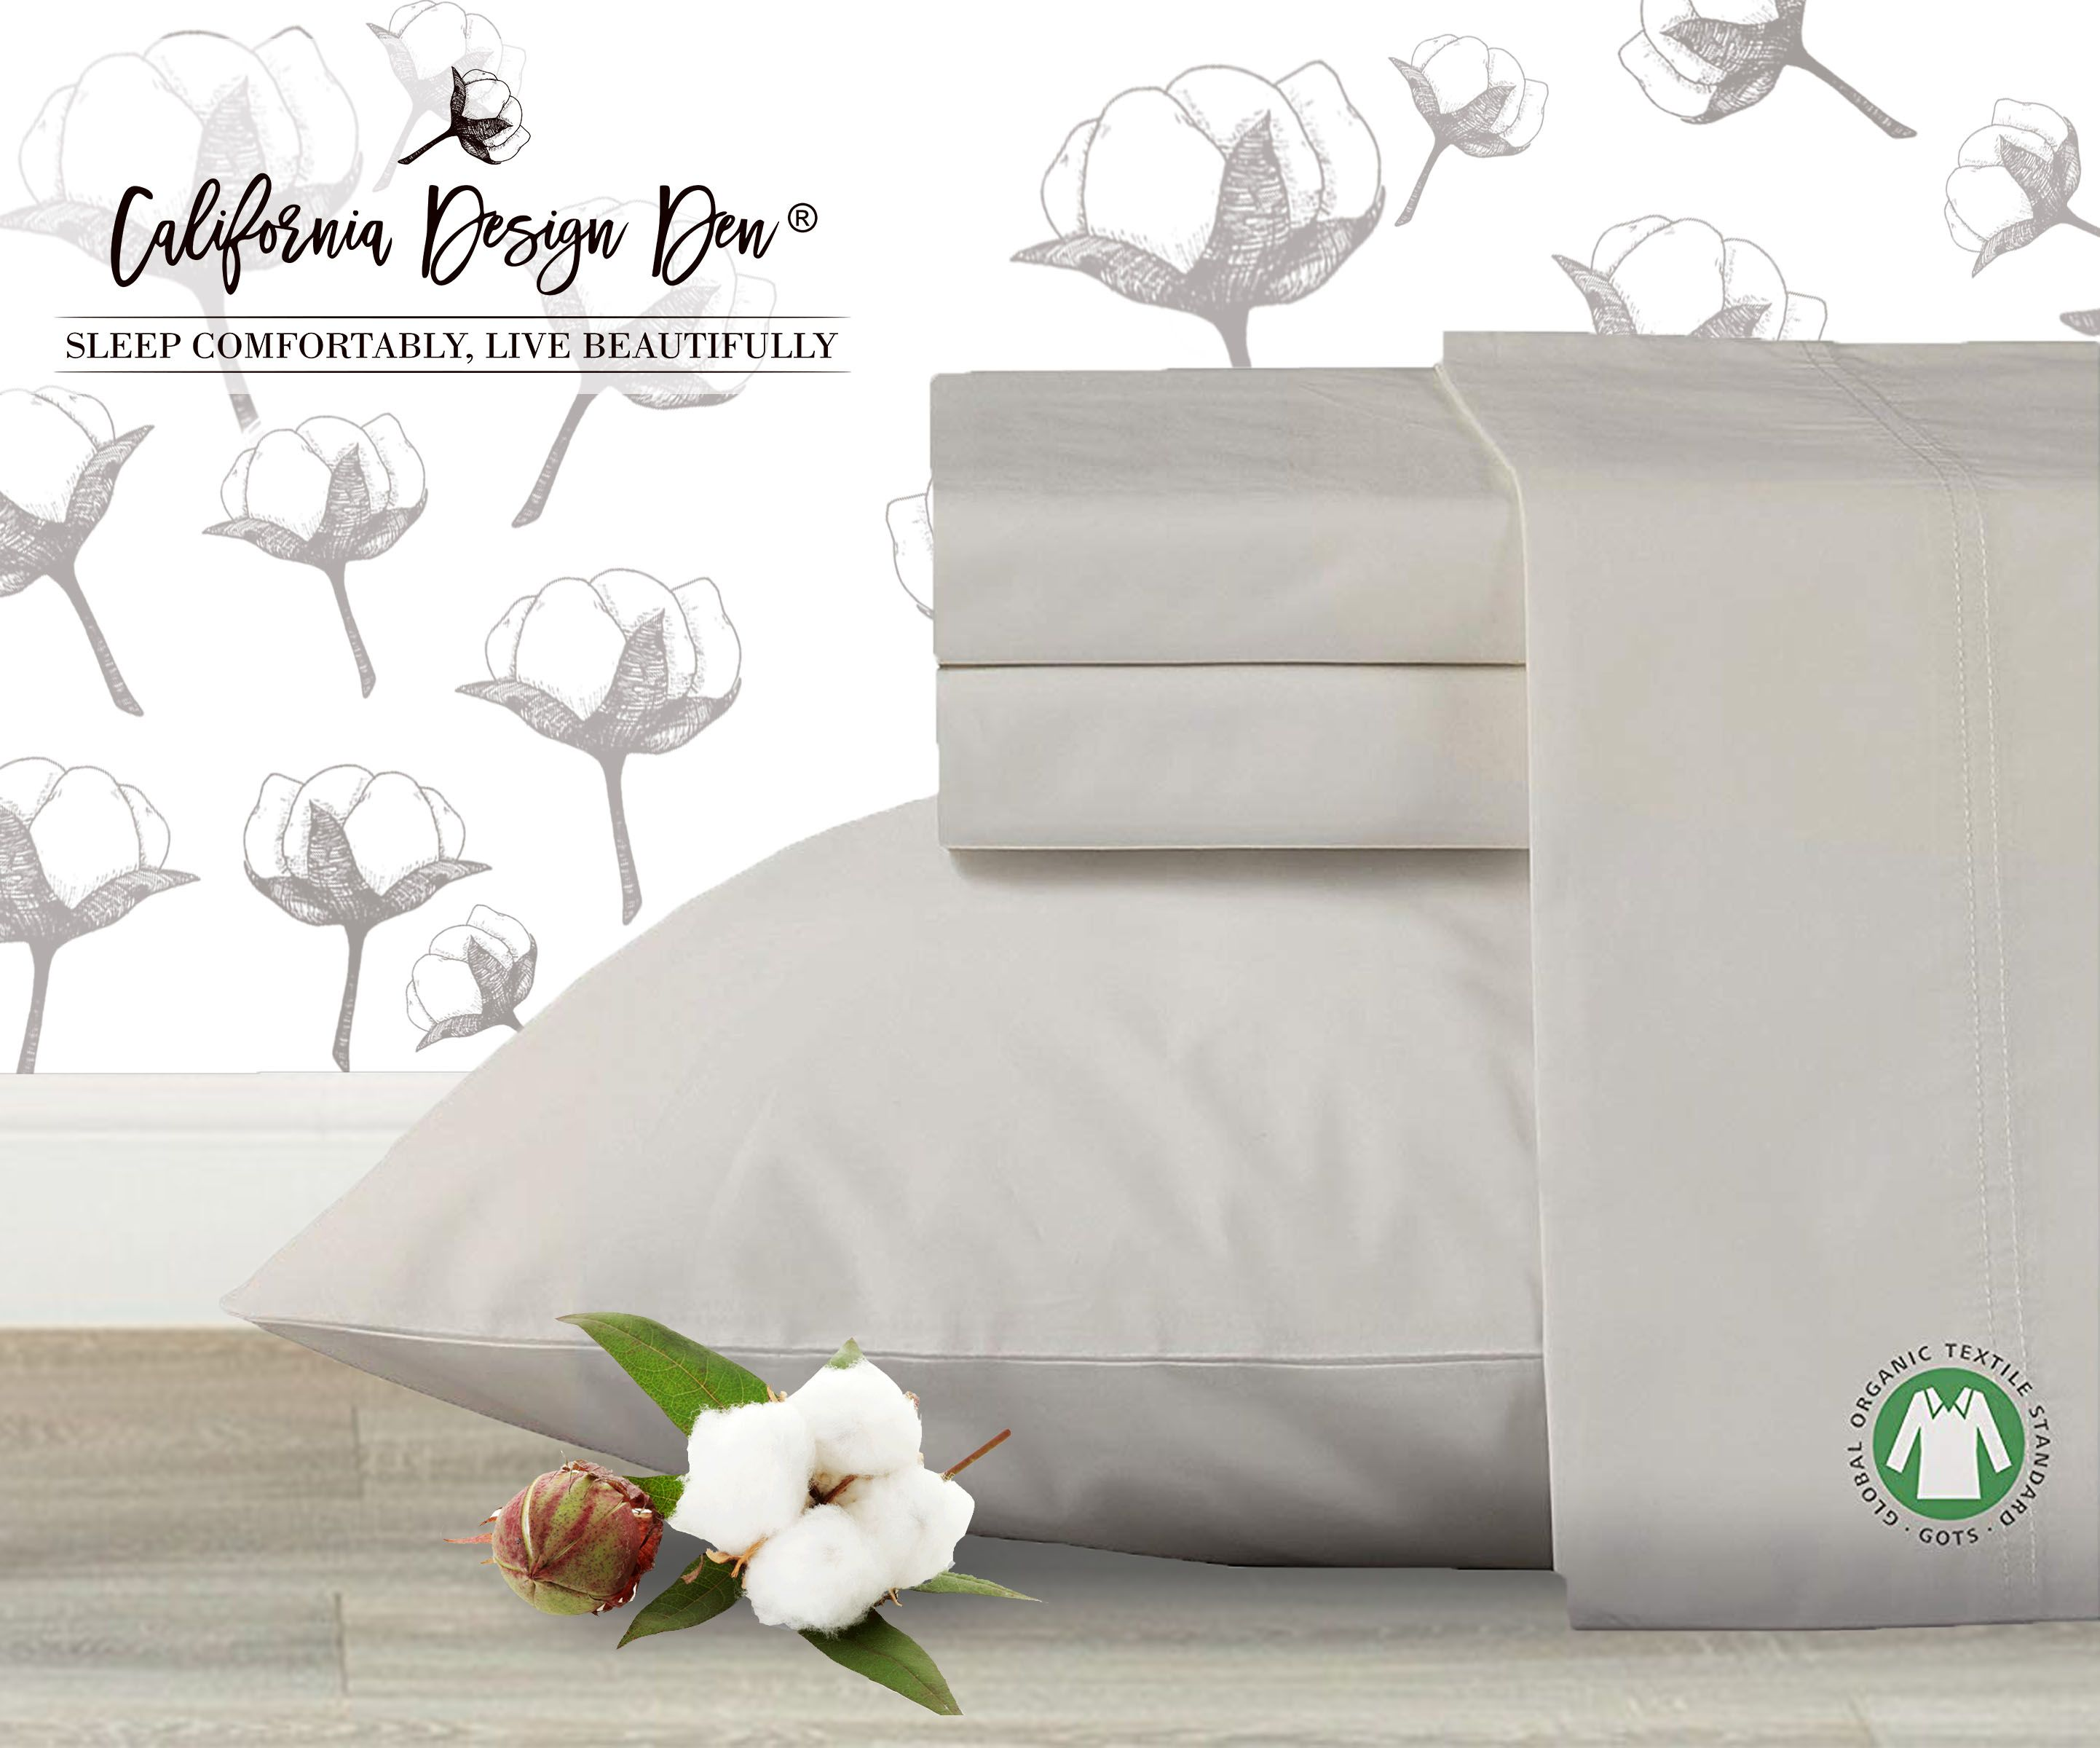 Go Cool Comfortable And Pesticide Free With Organic 100 Cotton Sheets Each Set Of Is Hypoallergenic Pure Natural